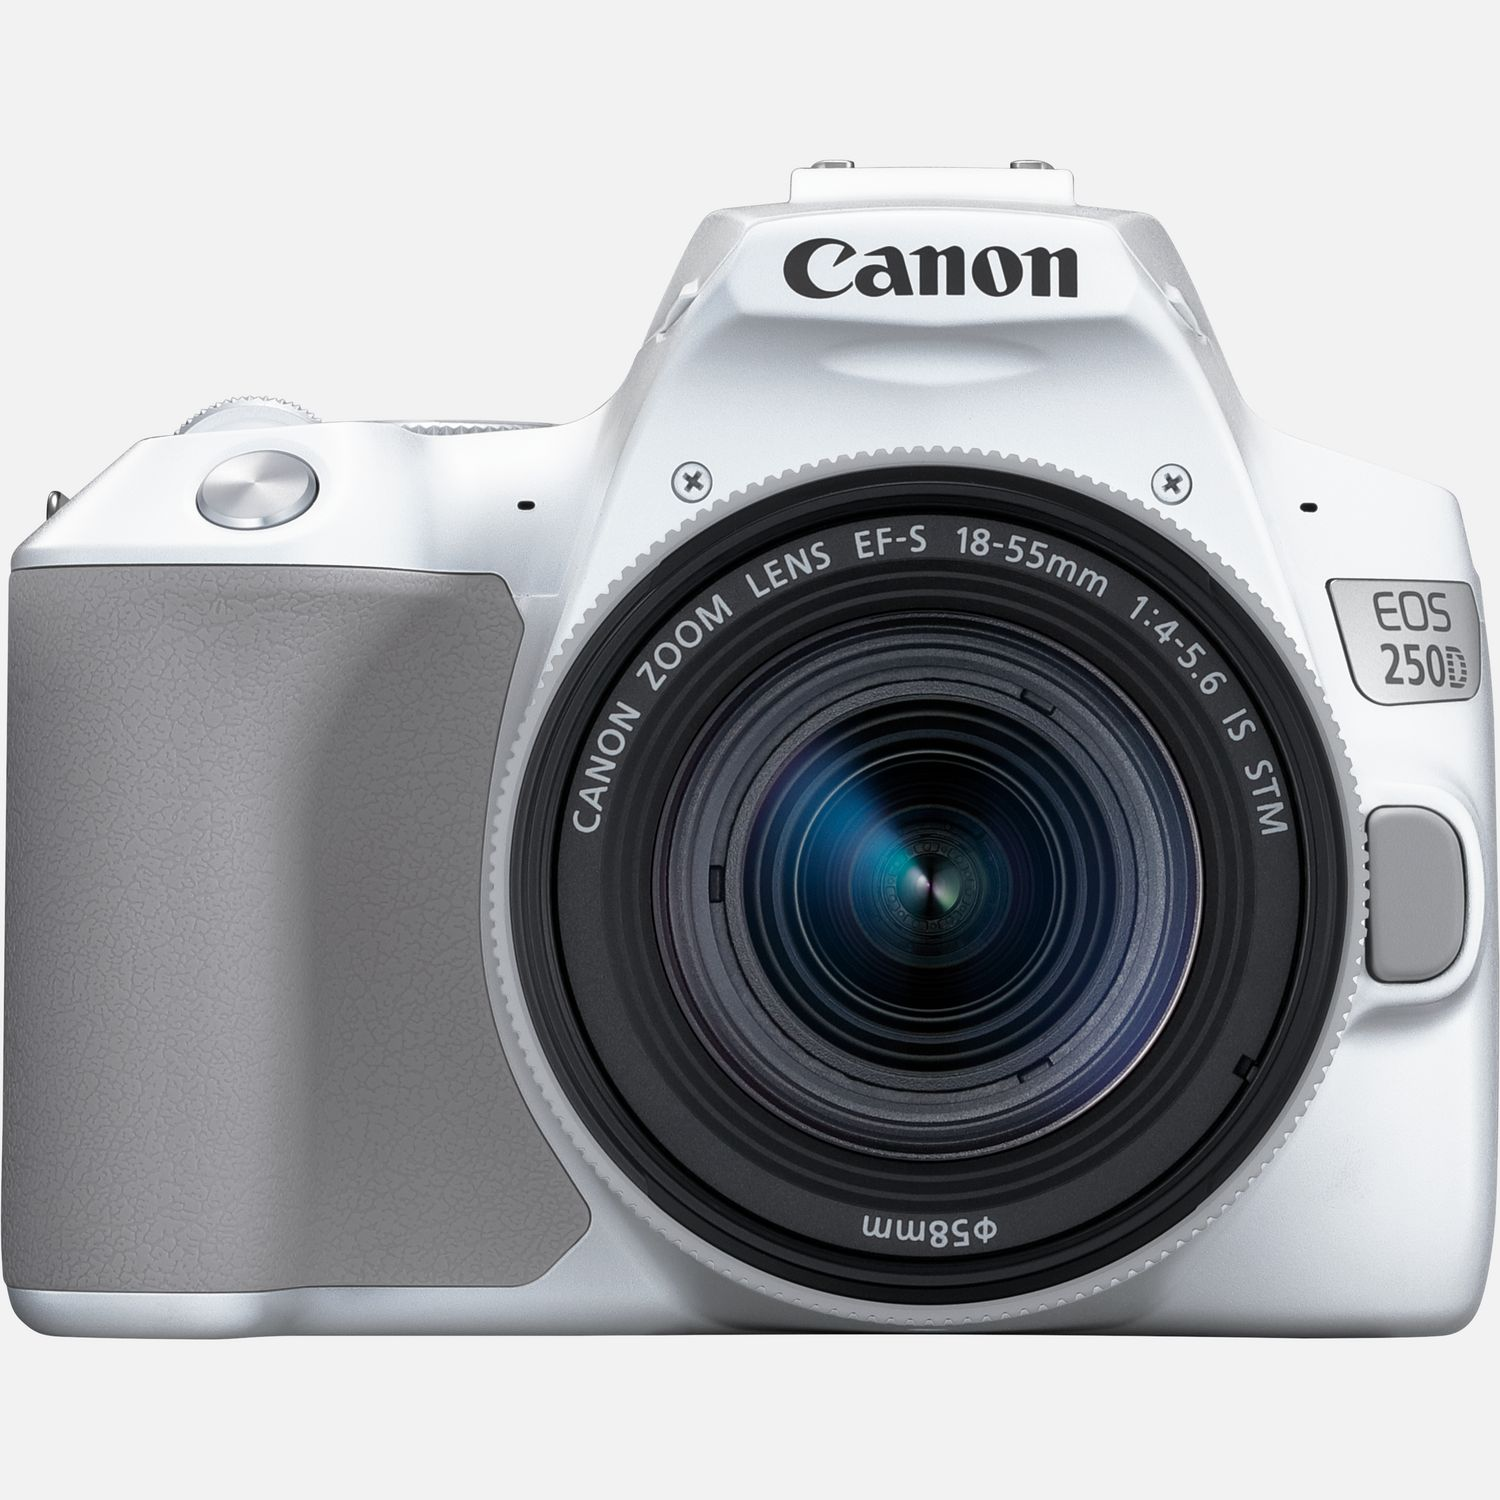 Canon EOS 250D, wit EF S 18 55mm f 4 5.6 IS STM lens